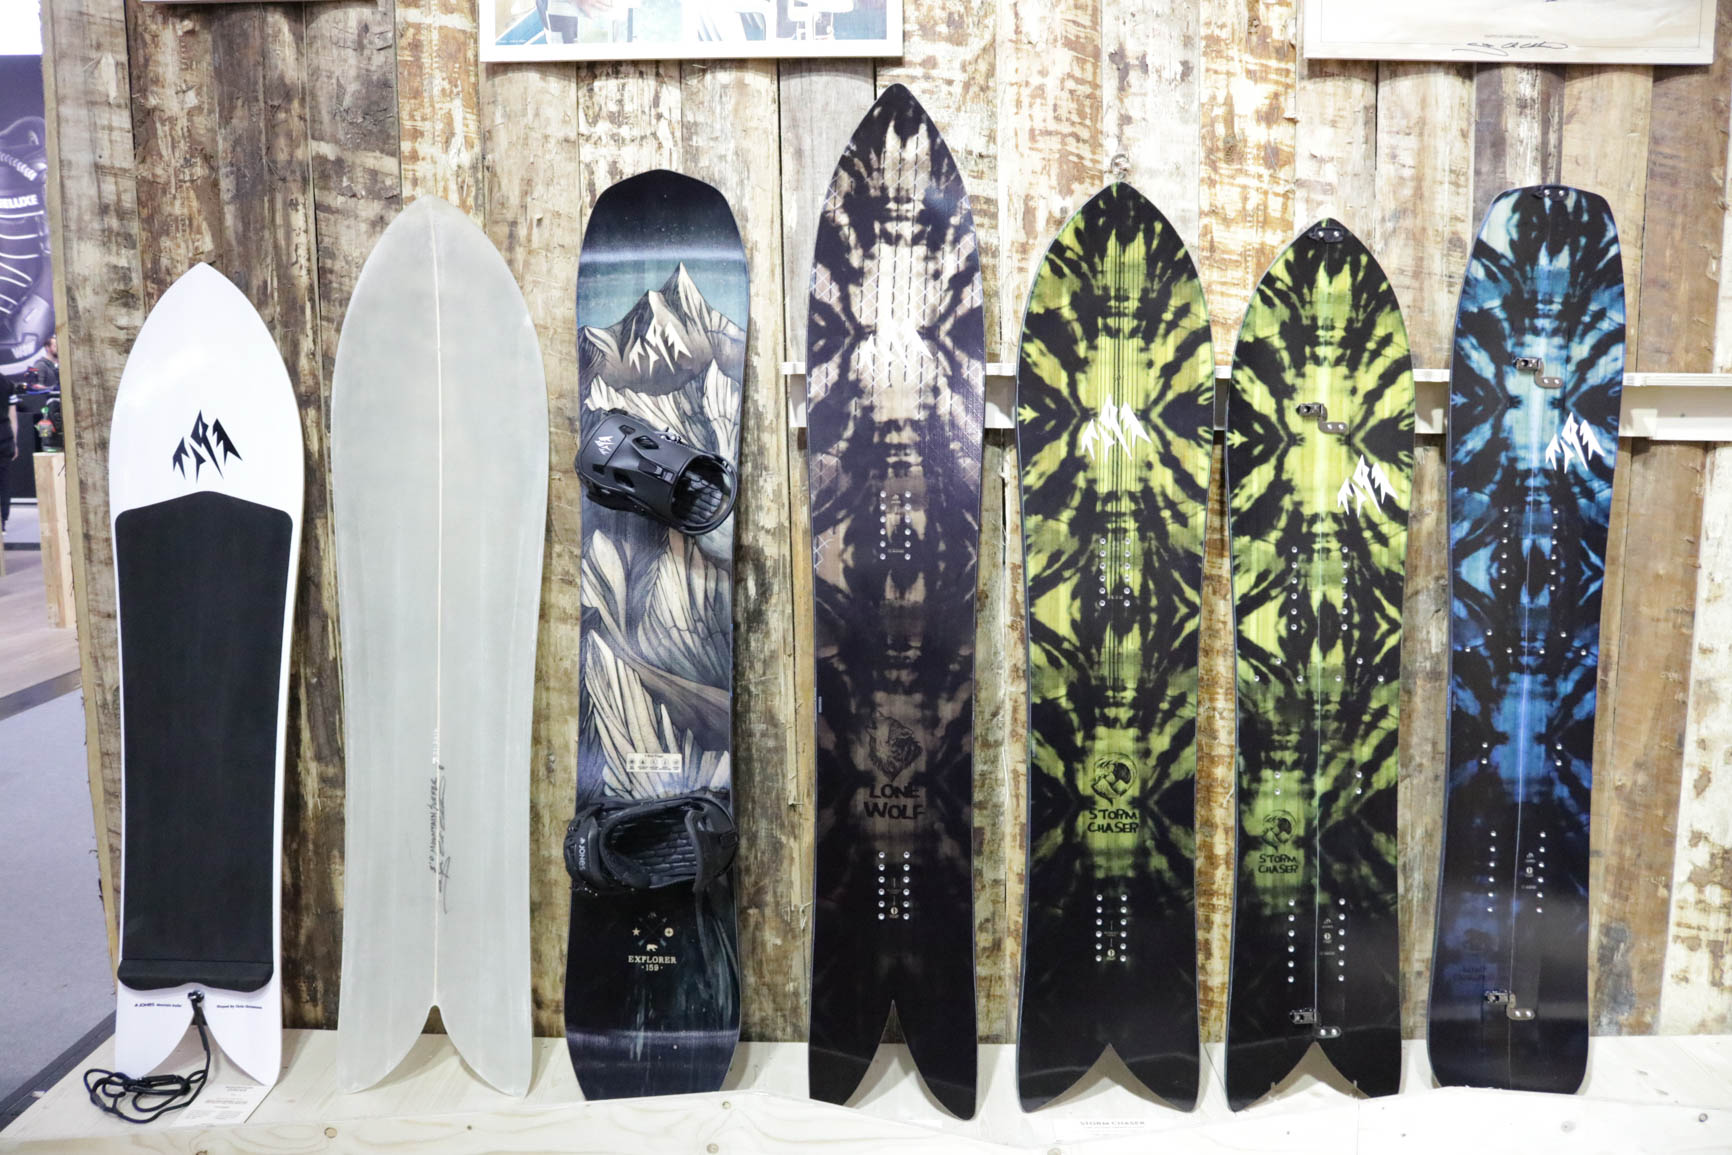 Jones Snowboards 18/19 (von links nach rechts): Moutain Surfer, Making off from the Mountain Surfer, Explorer, Lone Wolf, Storm Chaser, Storm Chaser Split, Mind Expander Split